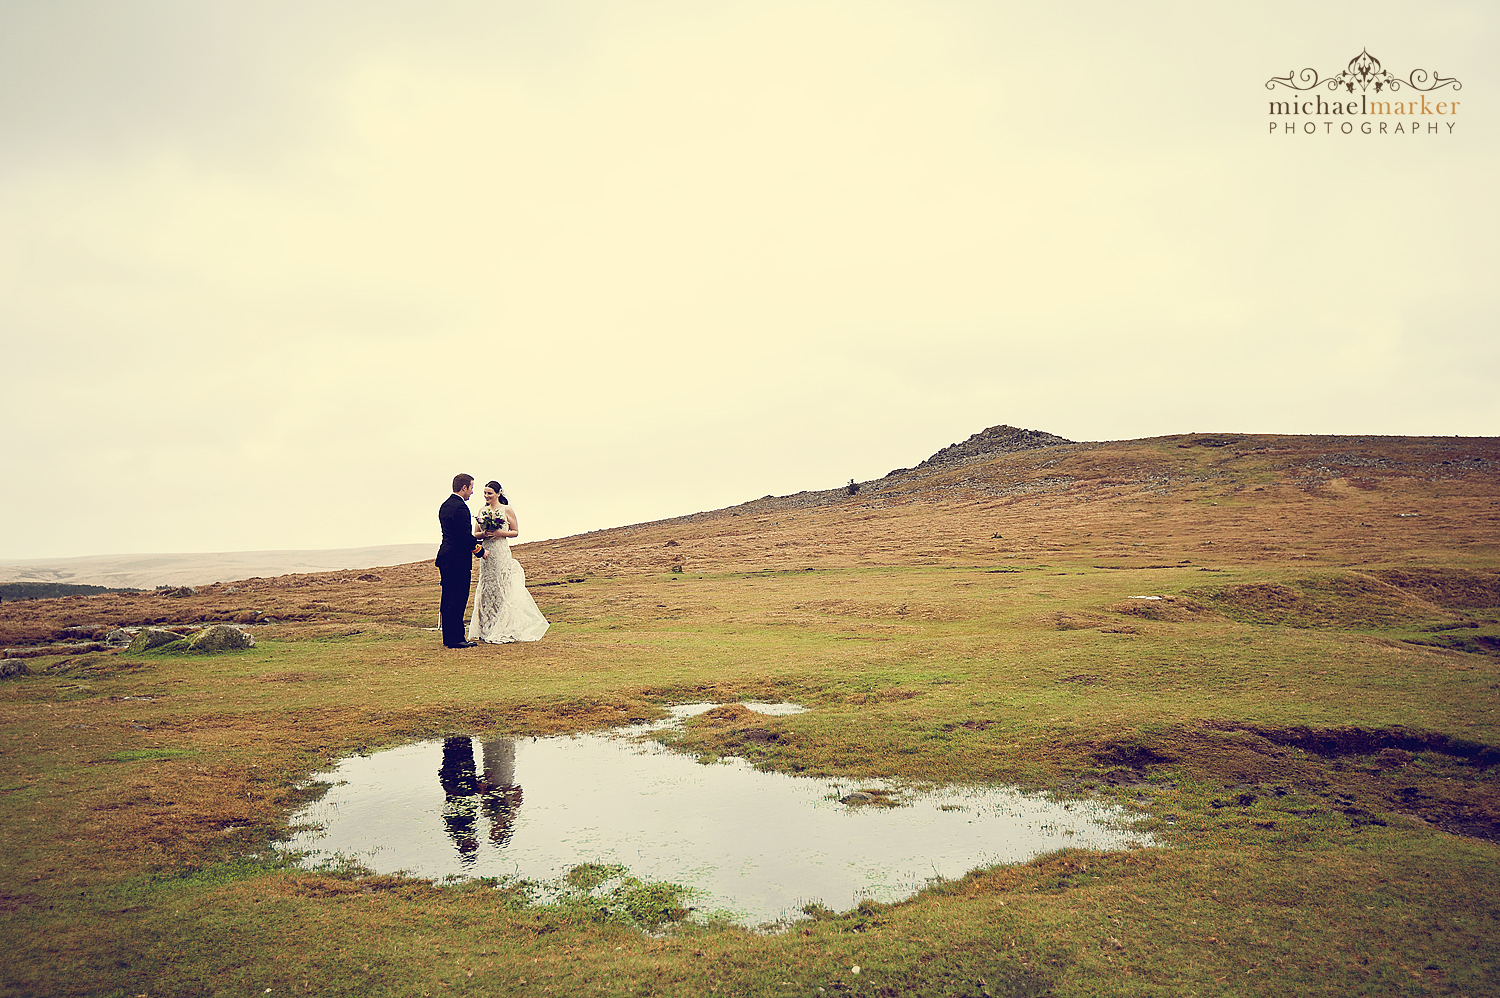 Winter wedding couple on Dartmoor in Devon